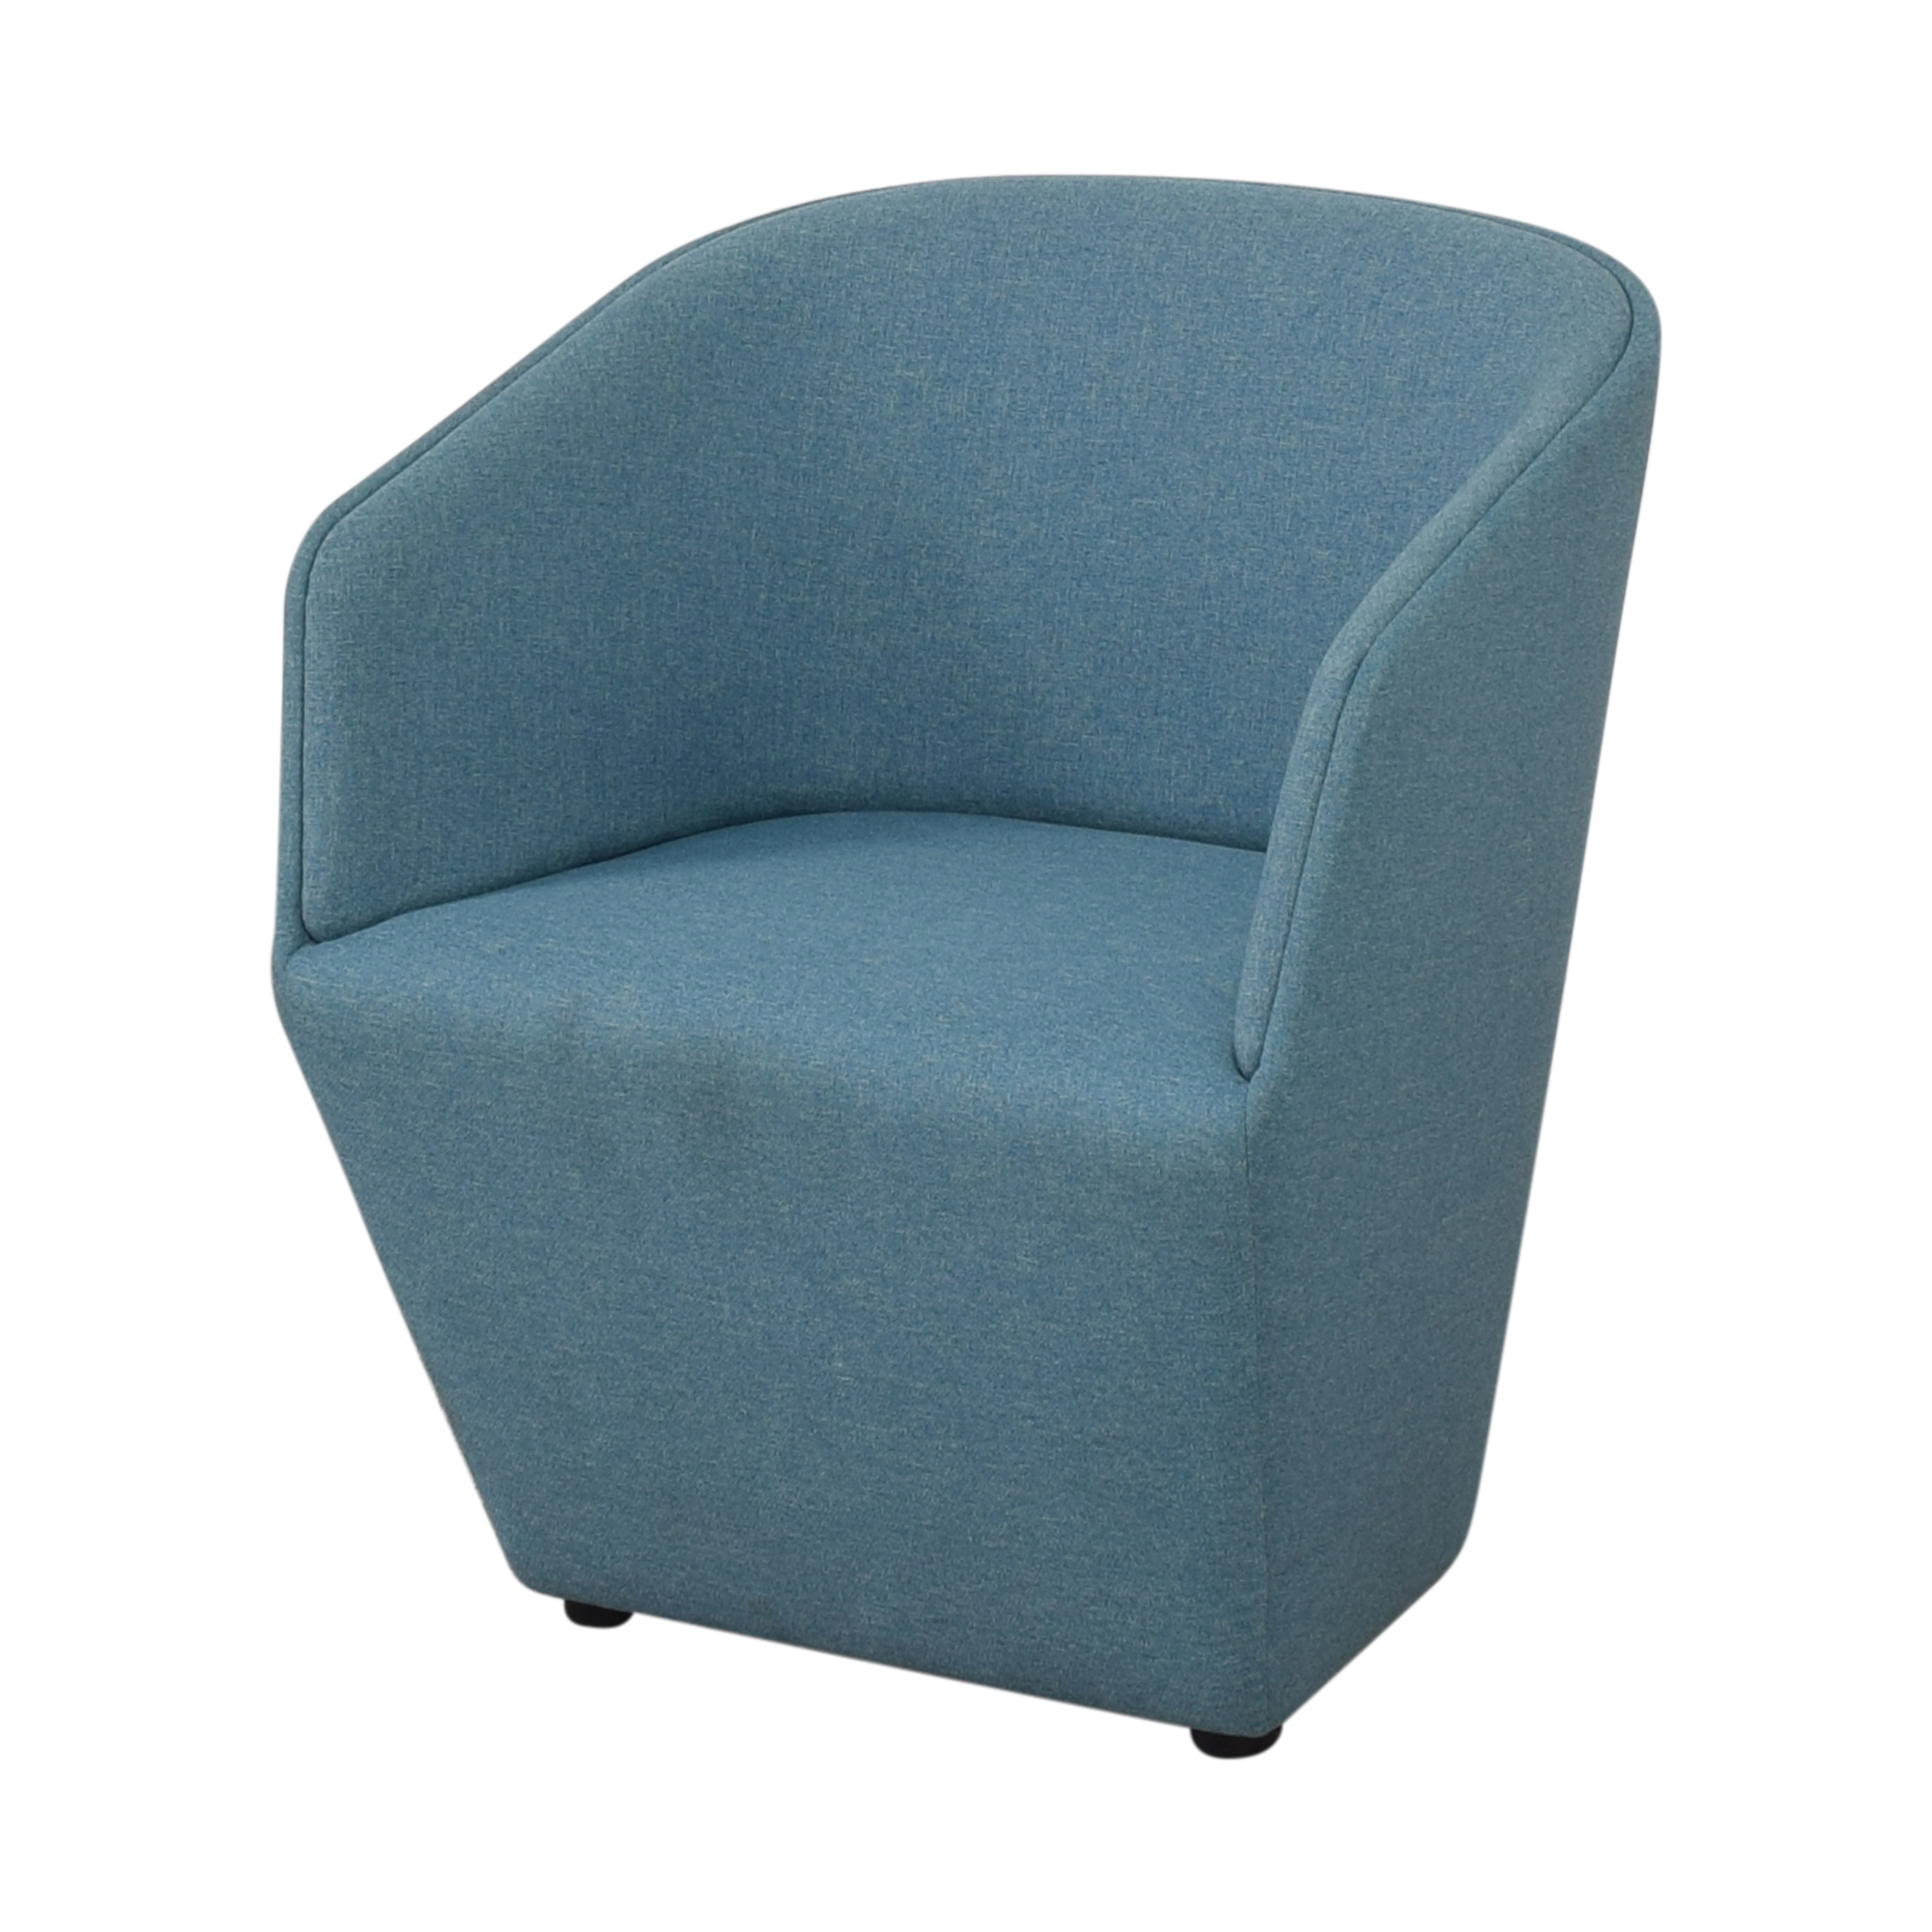 Poppin Pitch Club Chair Poppin